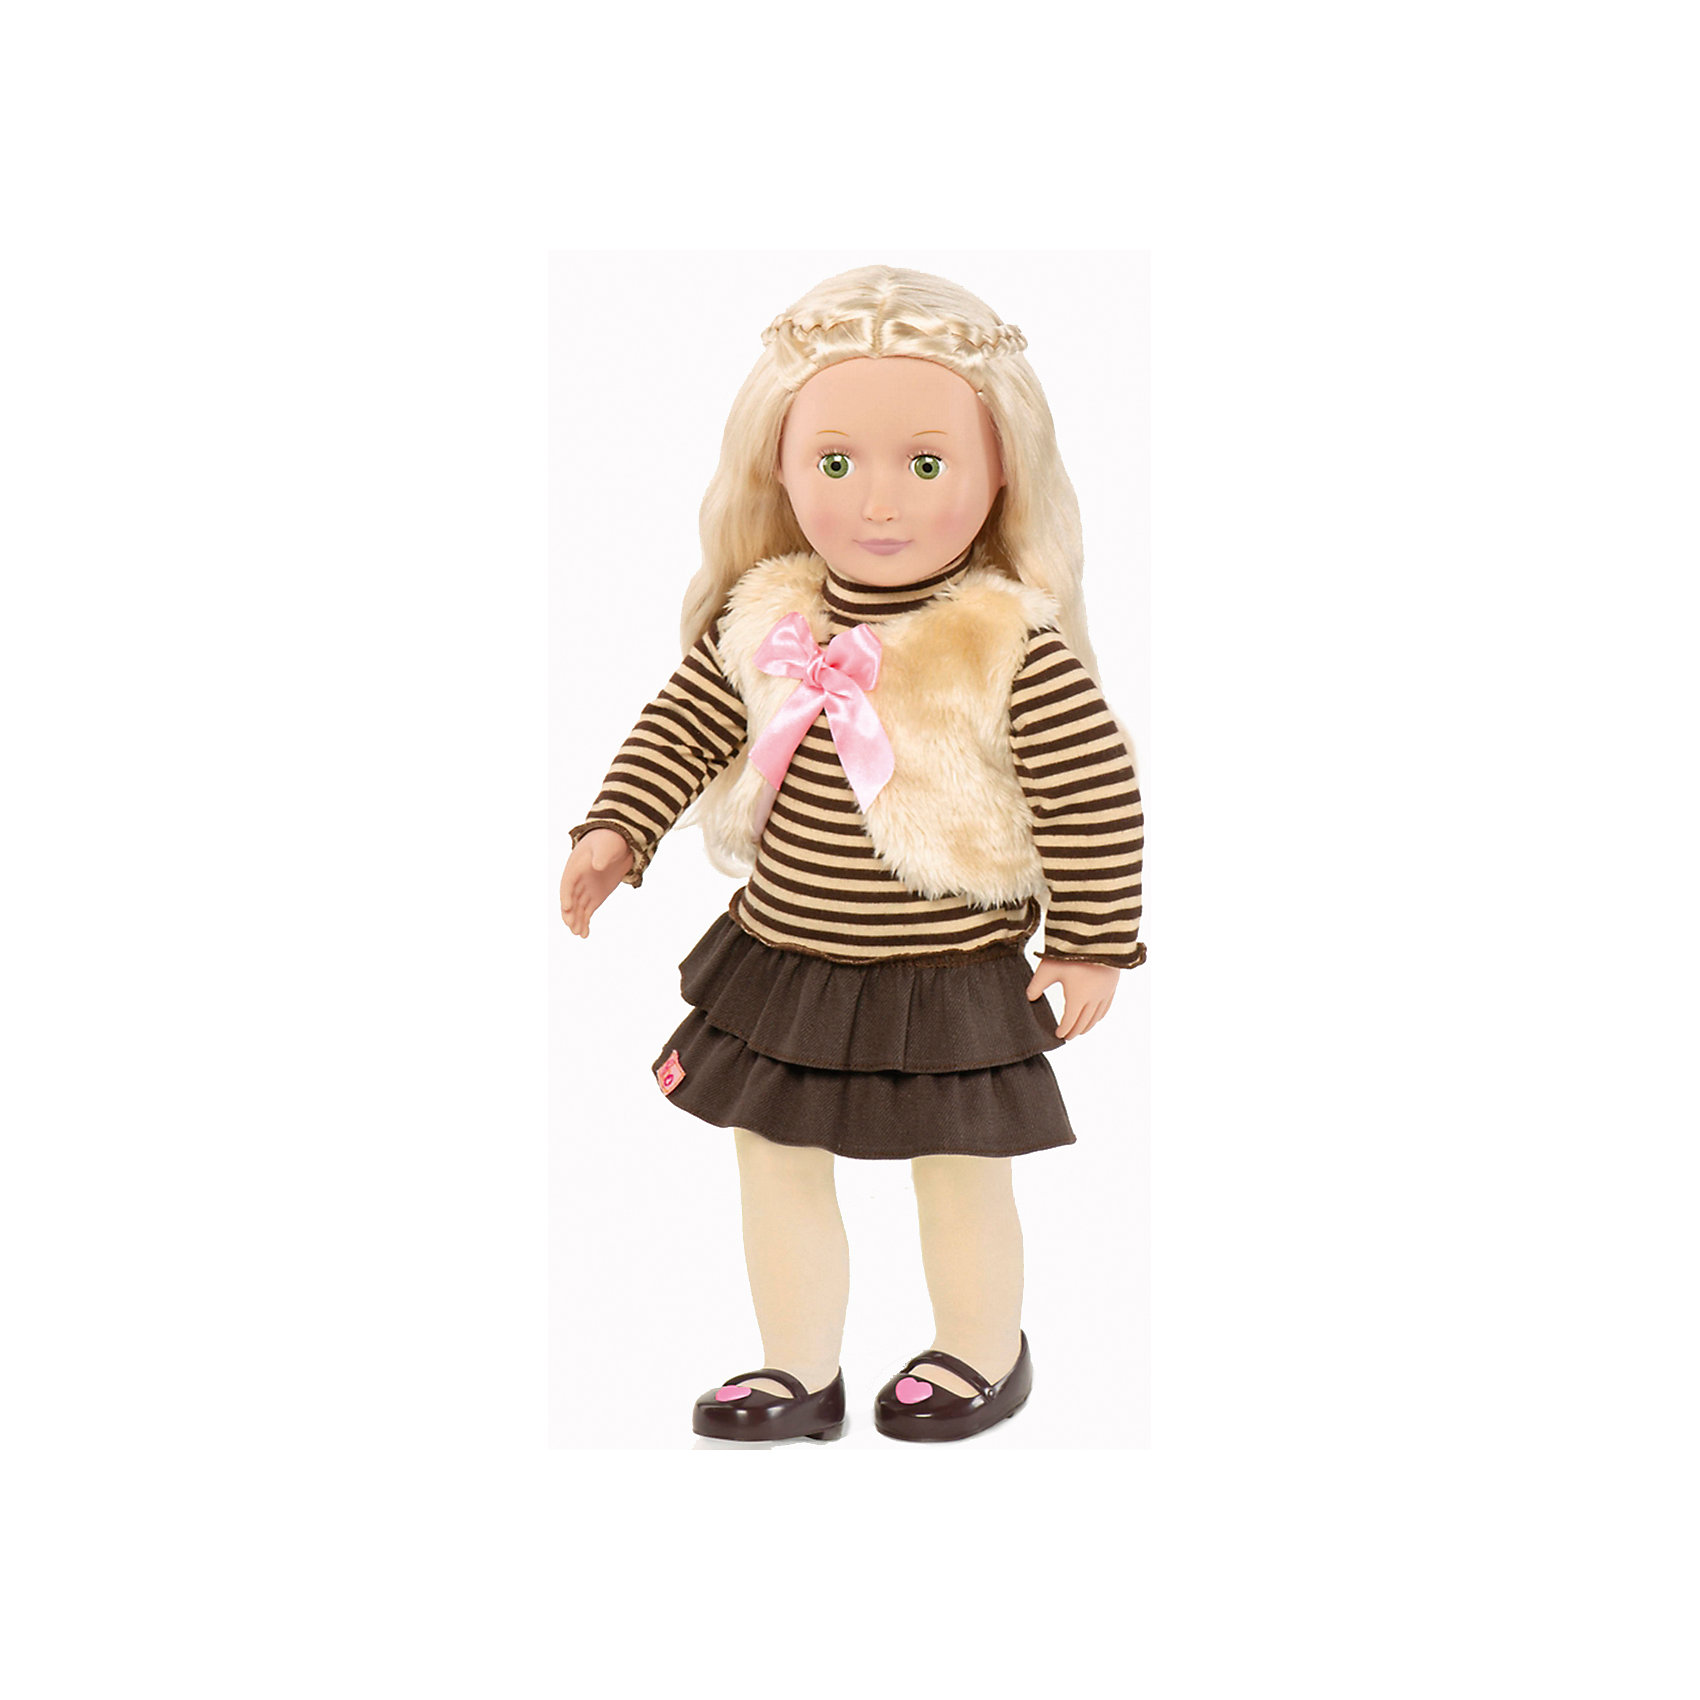 Our Generation Dolls Кукла Холли, 46 см, Our Generation Dolls куклы gulliver кукла дынька 30см